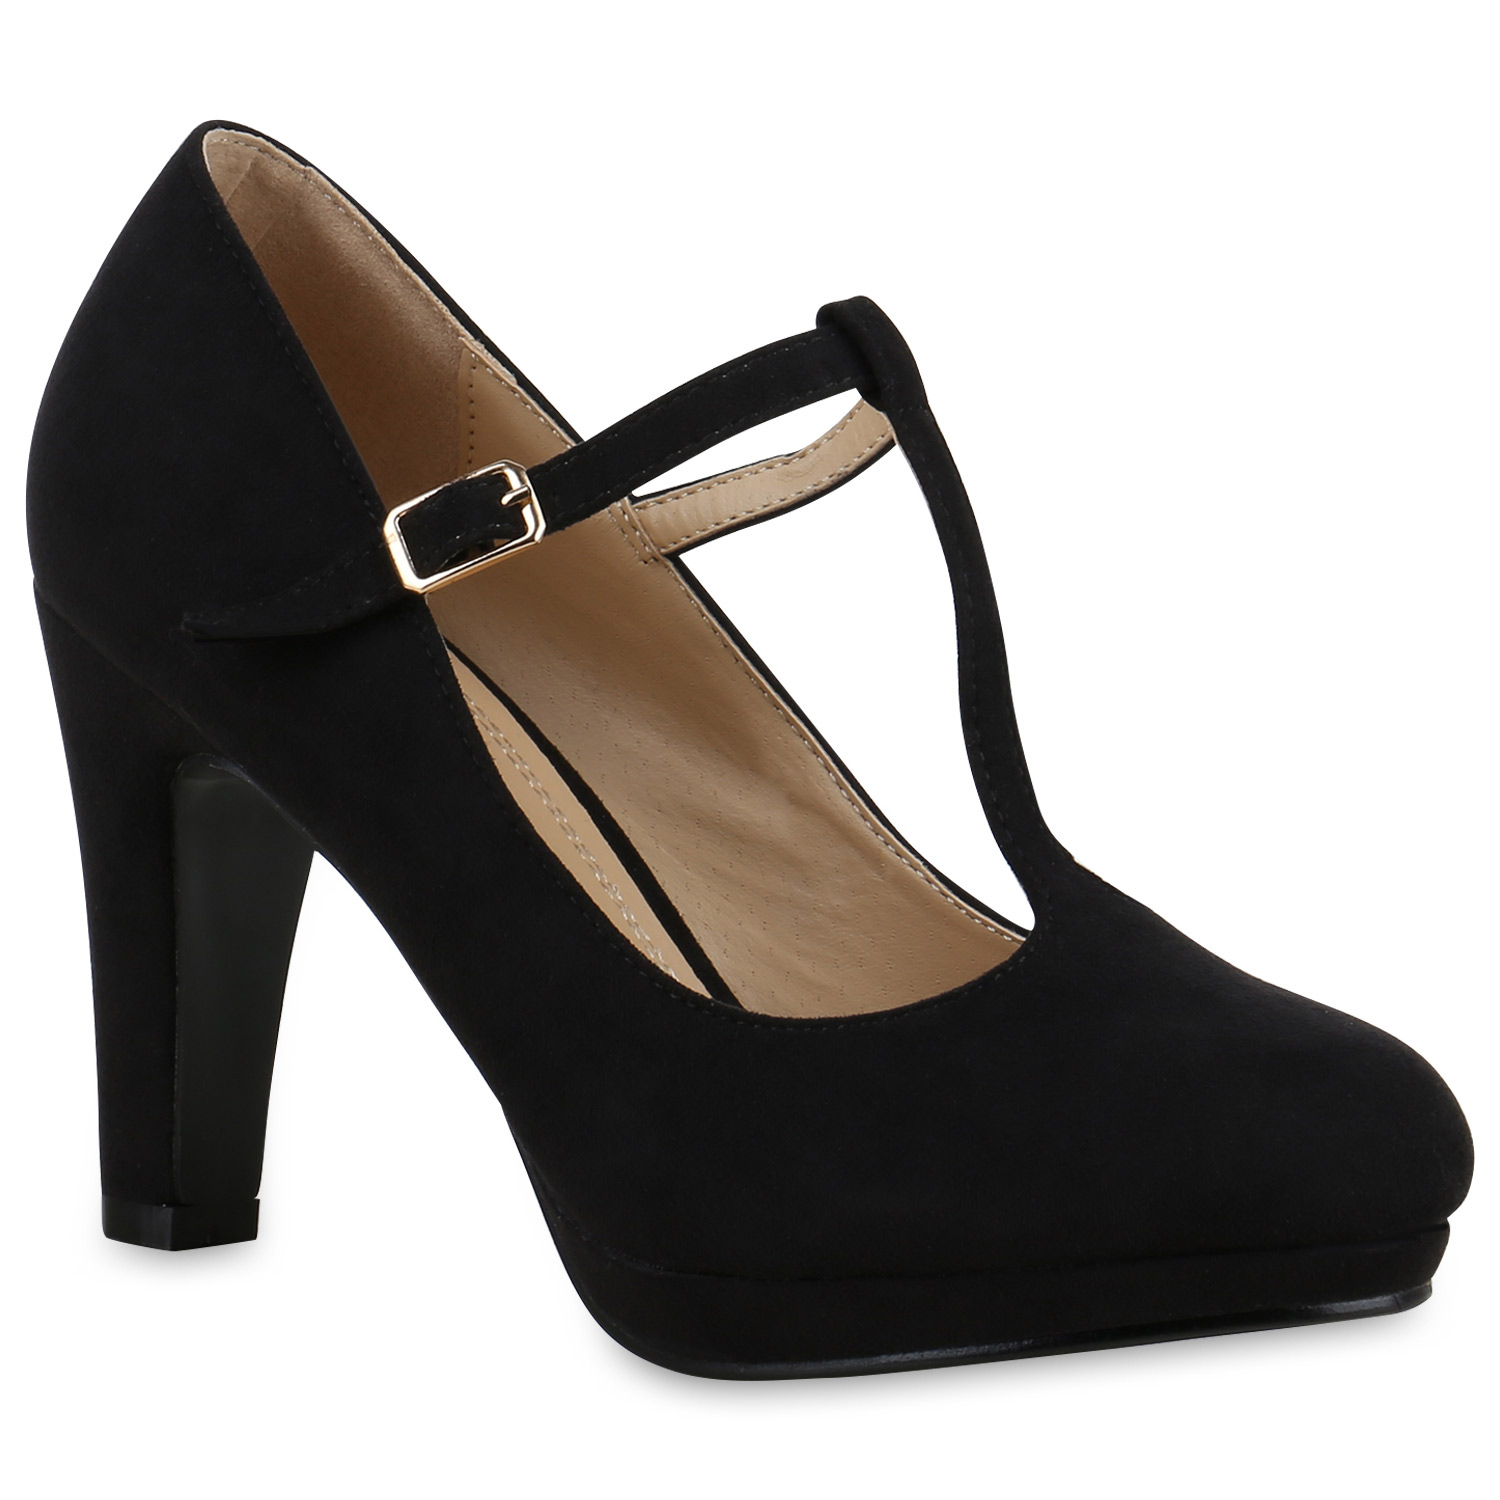 damen pumps mary janes blockabsatz high heels t strap 814325 schuhe ebay. Black Bedroom Furniture Sets. Home Design Ideas